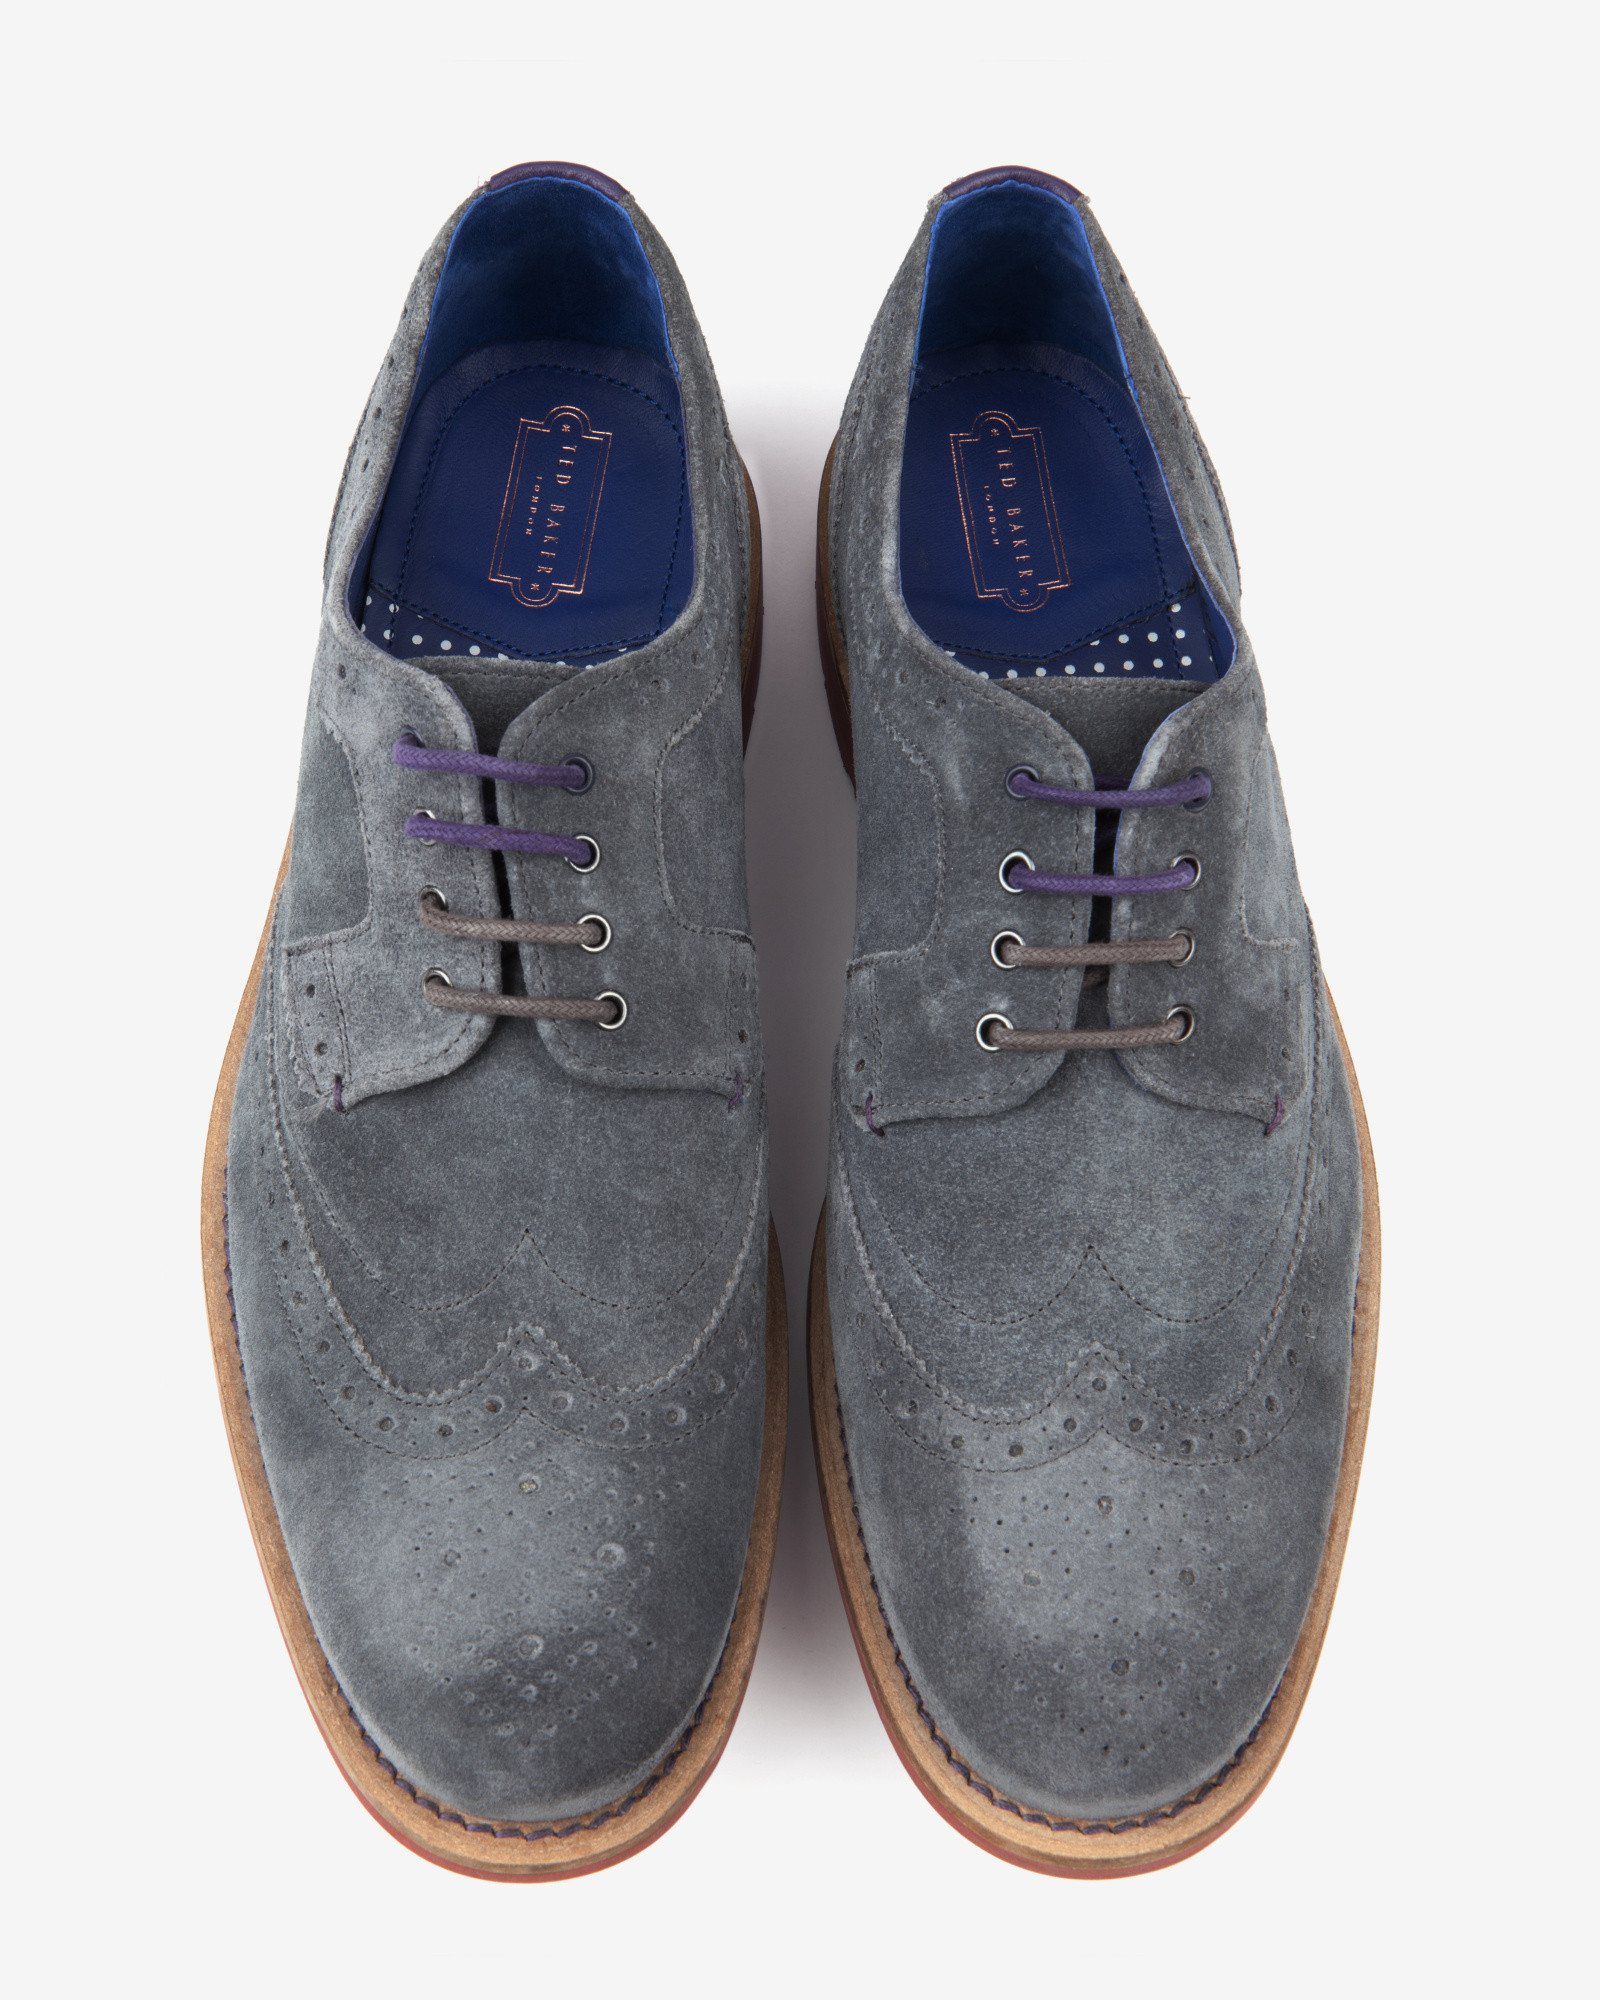 a9620f7286b8f7 Lyst - Ted Baker Suede Wingtip Brogues in Gray for Men